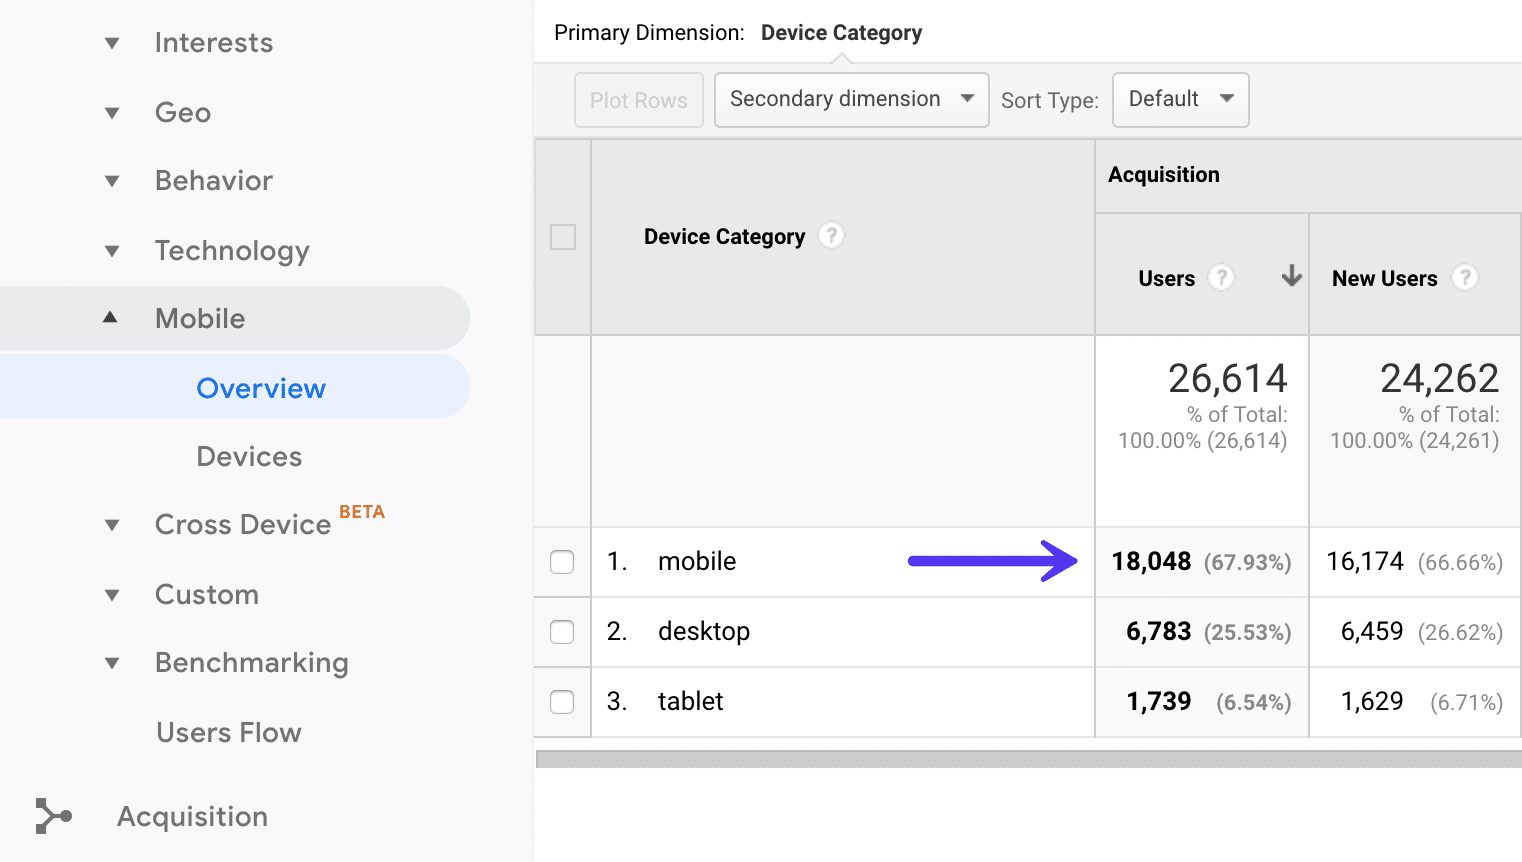 Trafic mobile dans Google Analytics